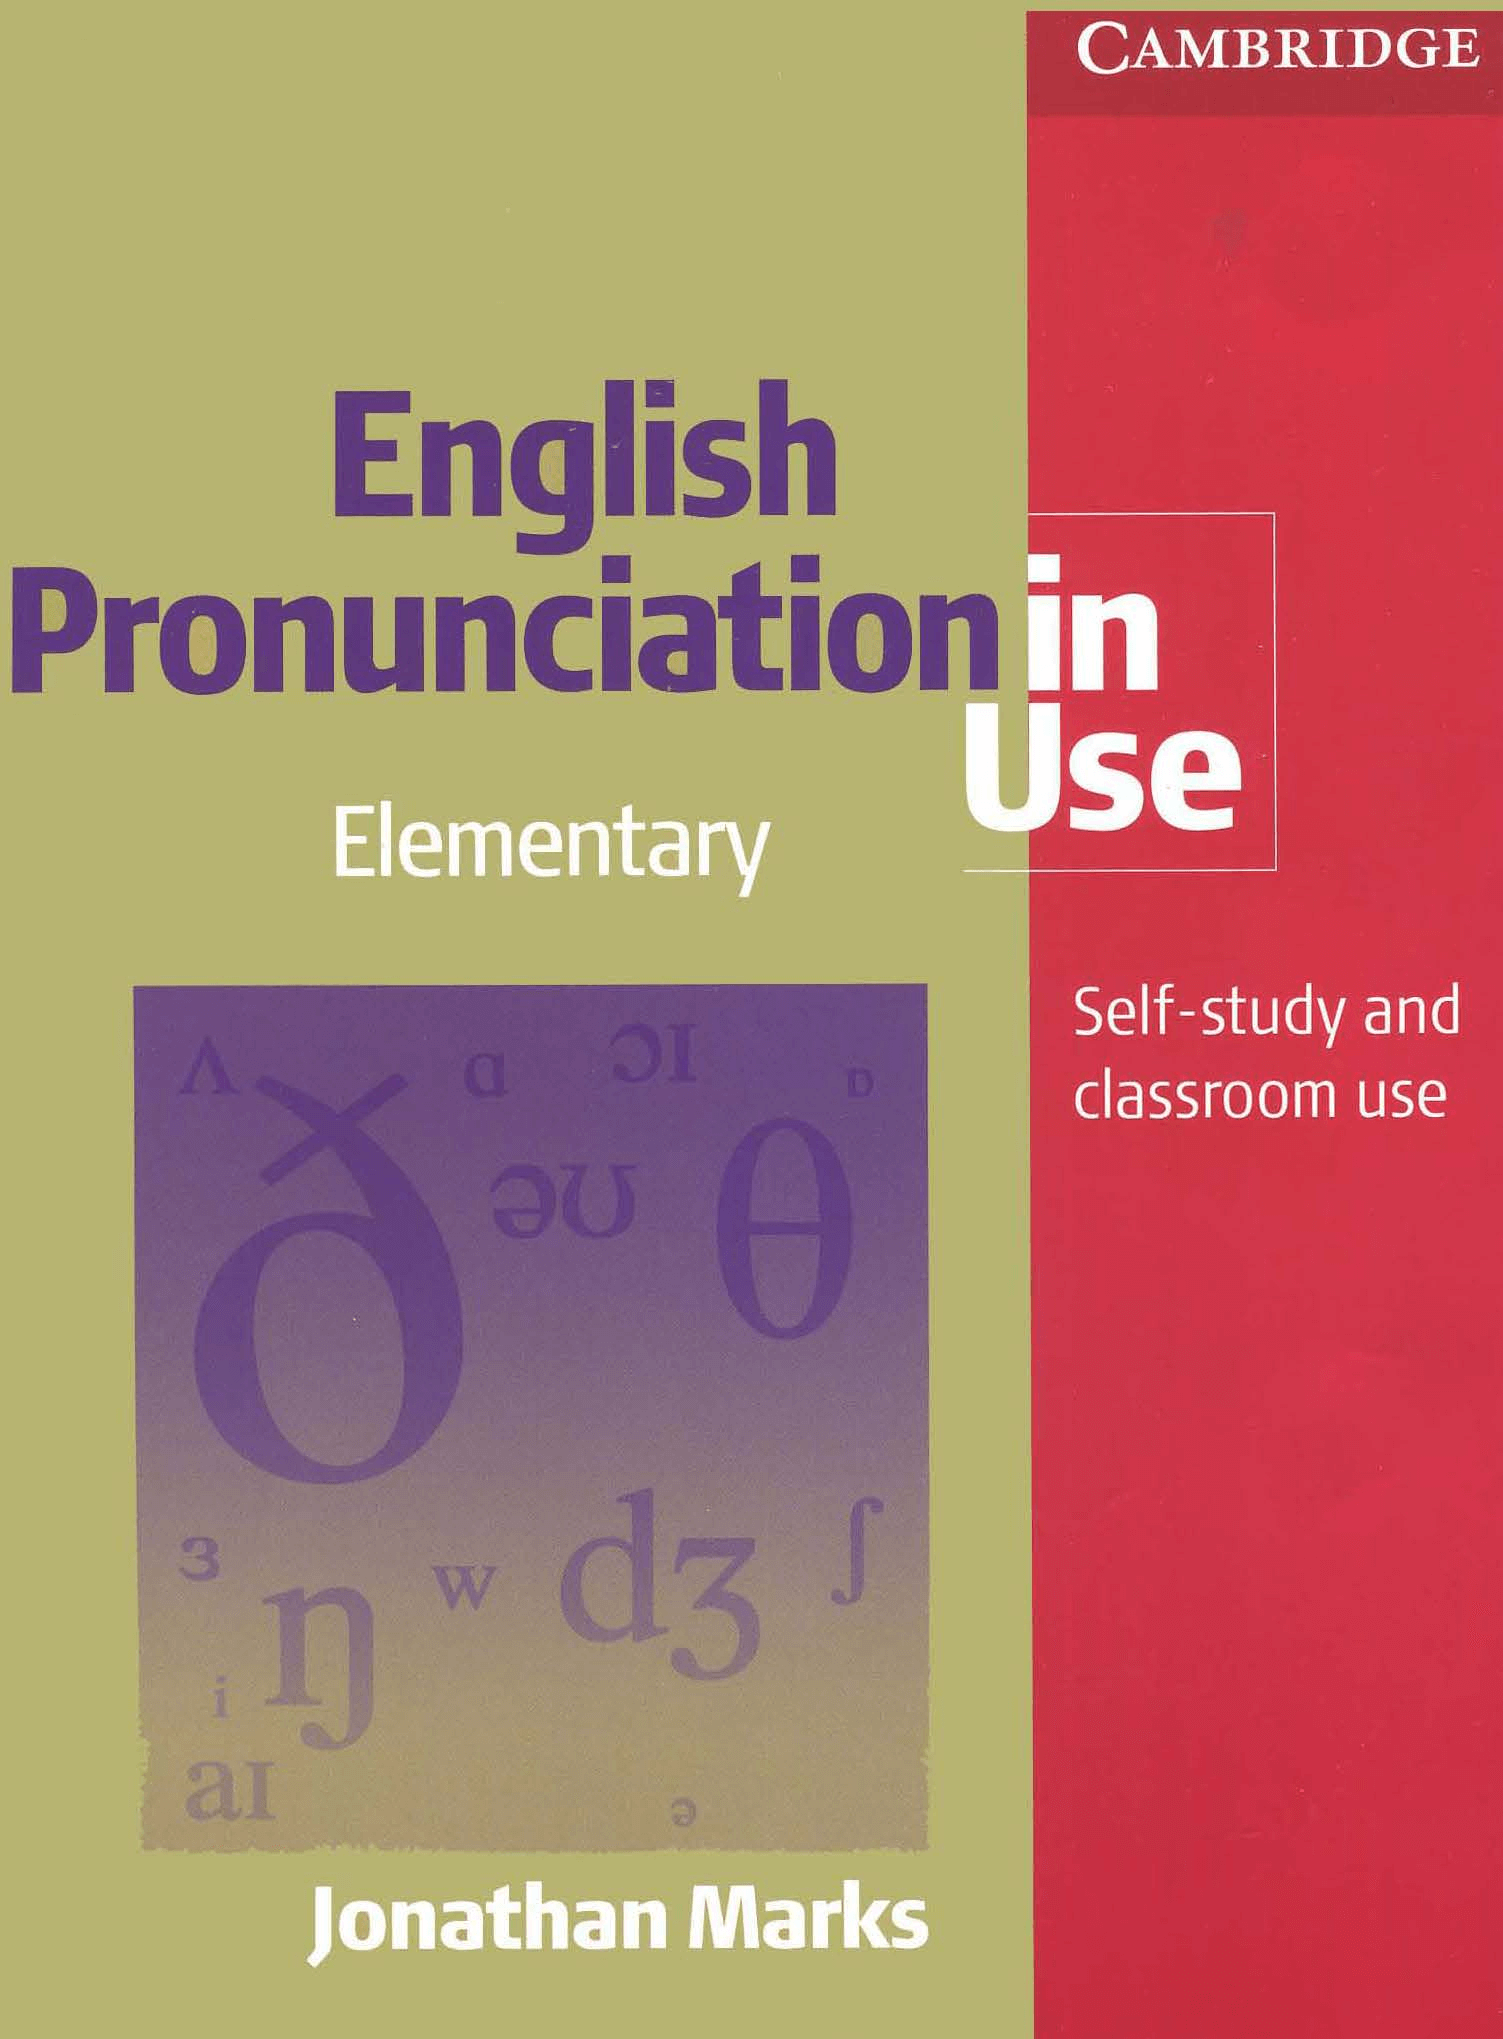 Tải sách English Pronunciation in Use Elementary PDF